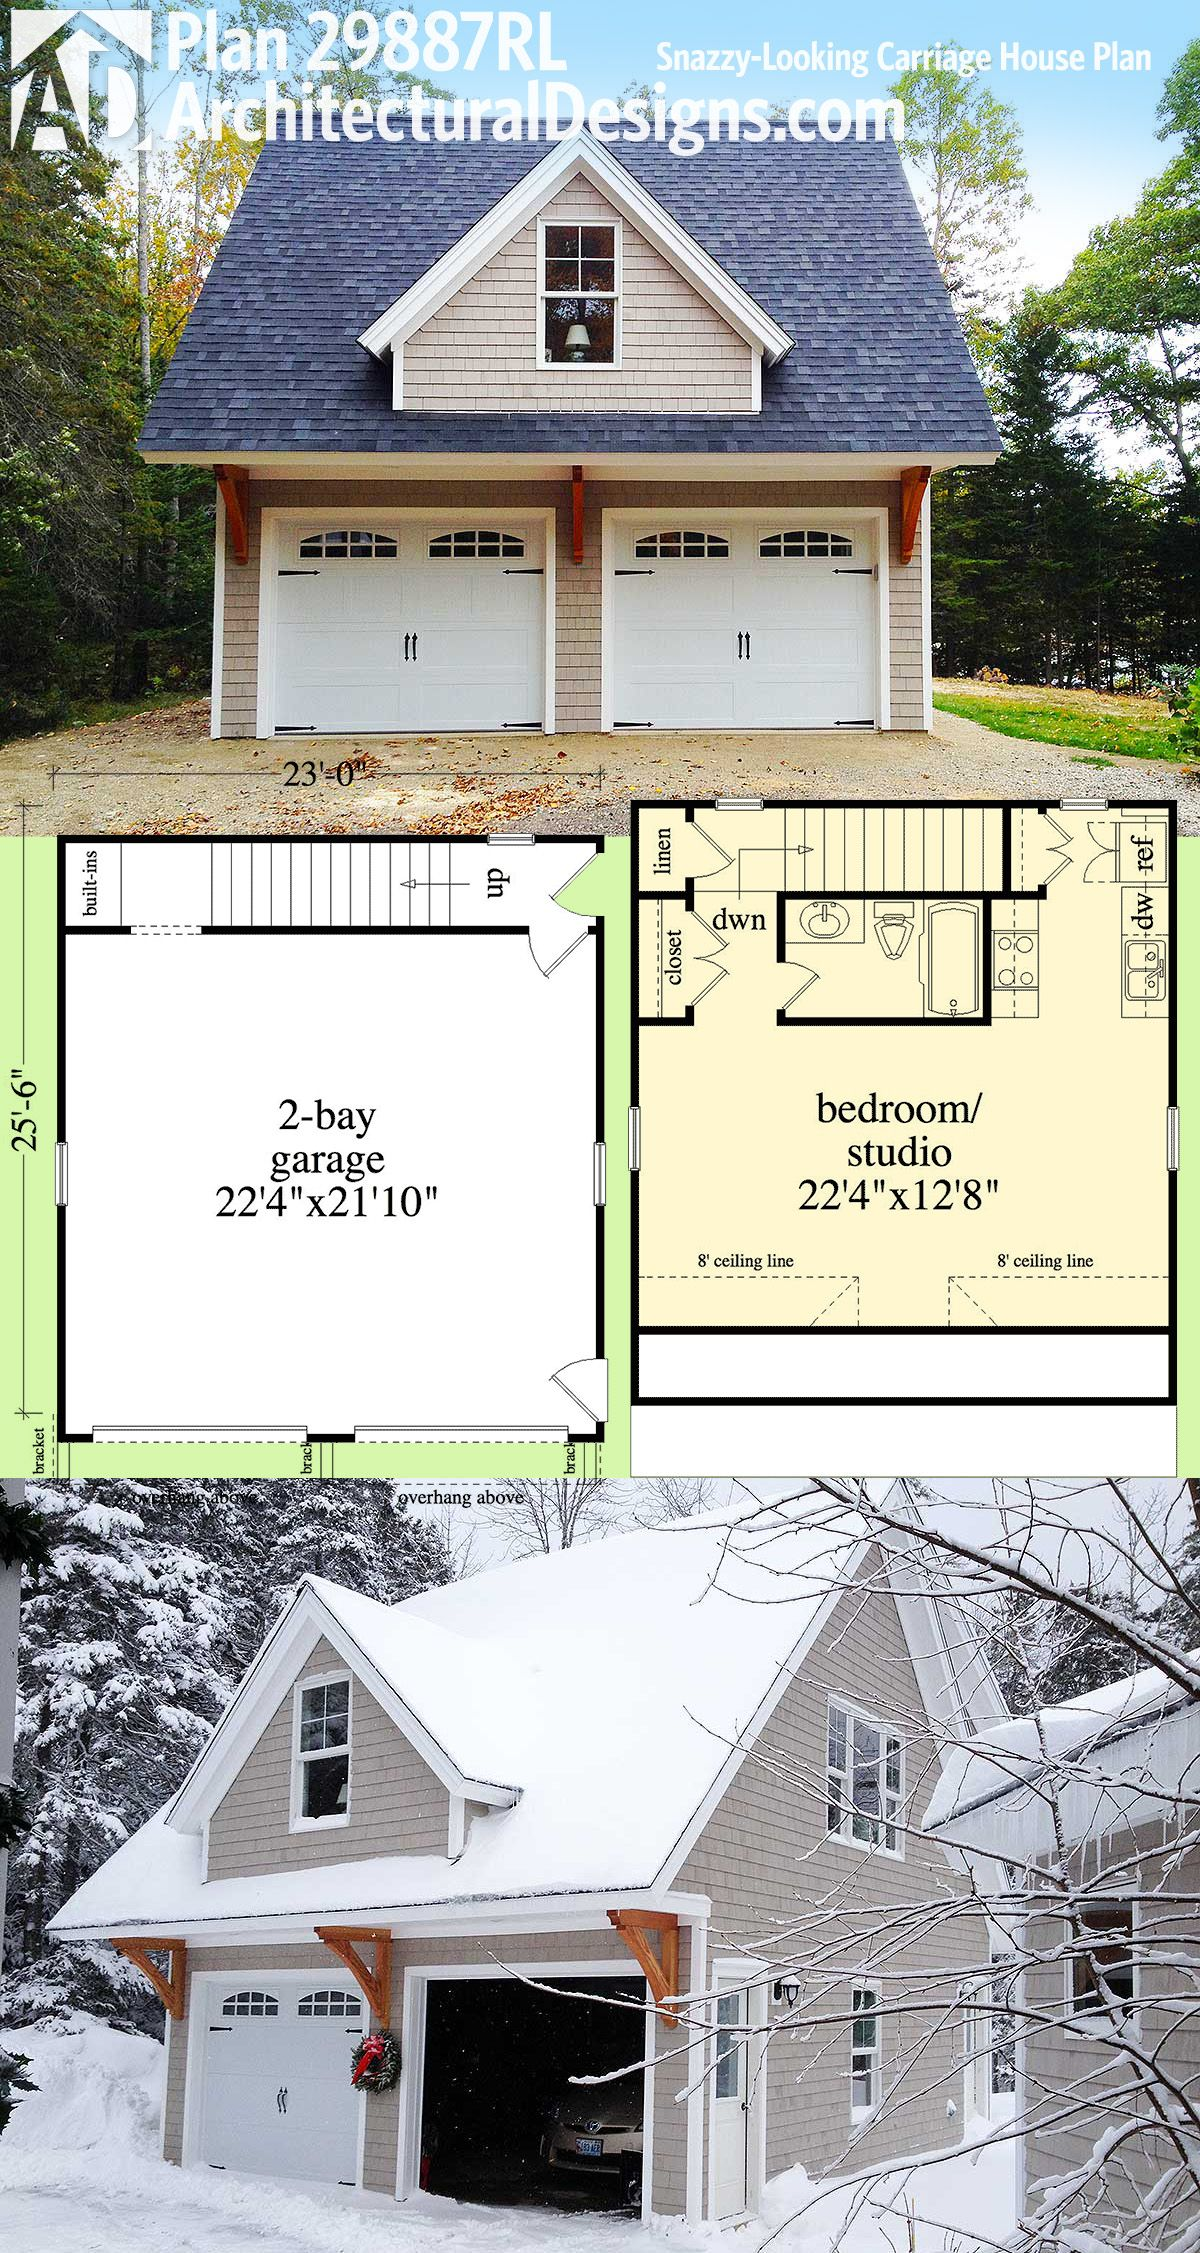 Plan 29887rl snazzy looking carriage house plan for Garage guest house plans